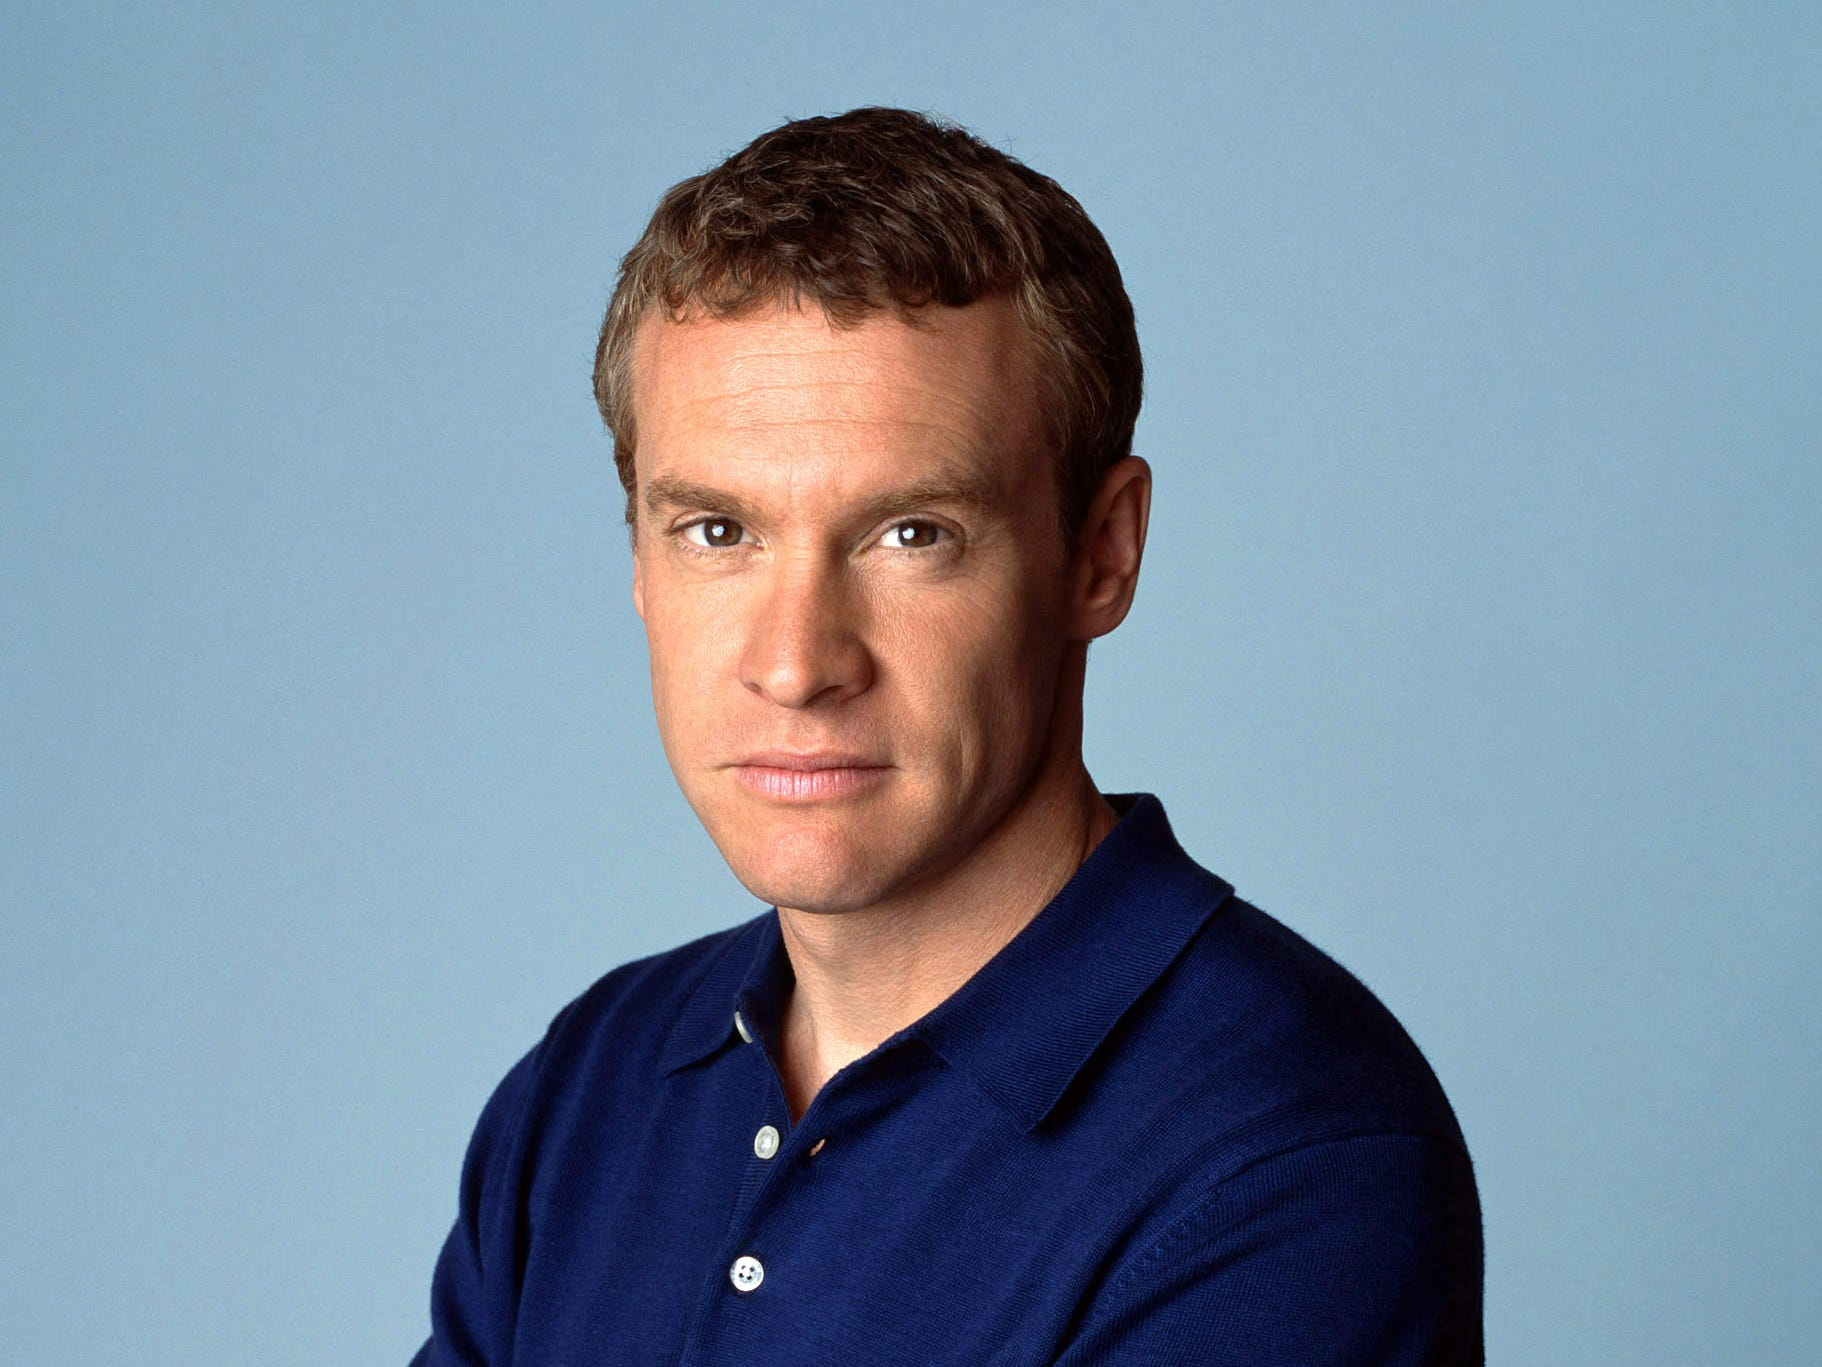 Tate Donovan played Jimmy Cooper , Marissa's father who has financial and personal issues.